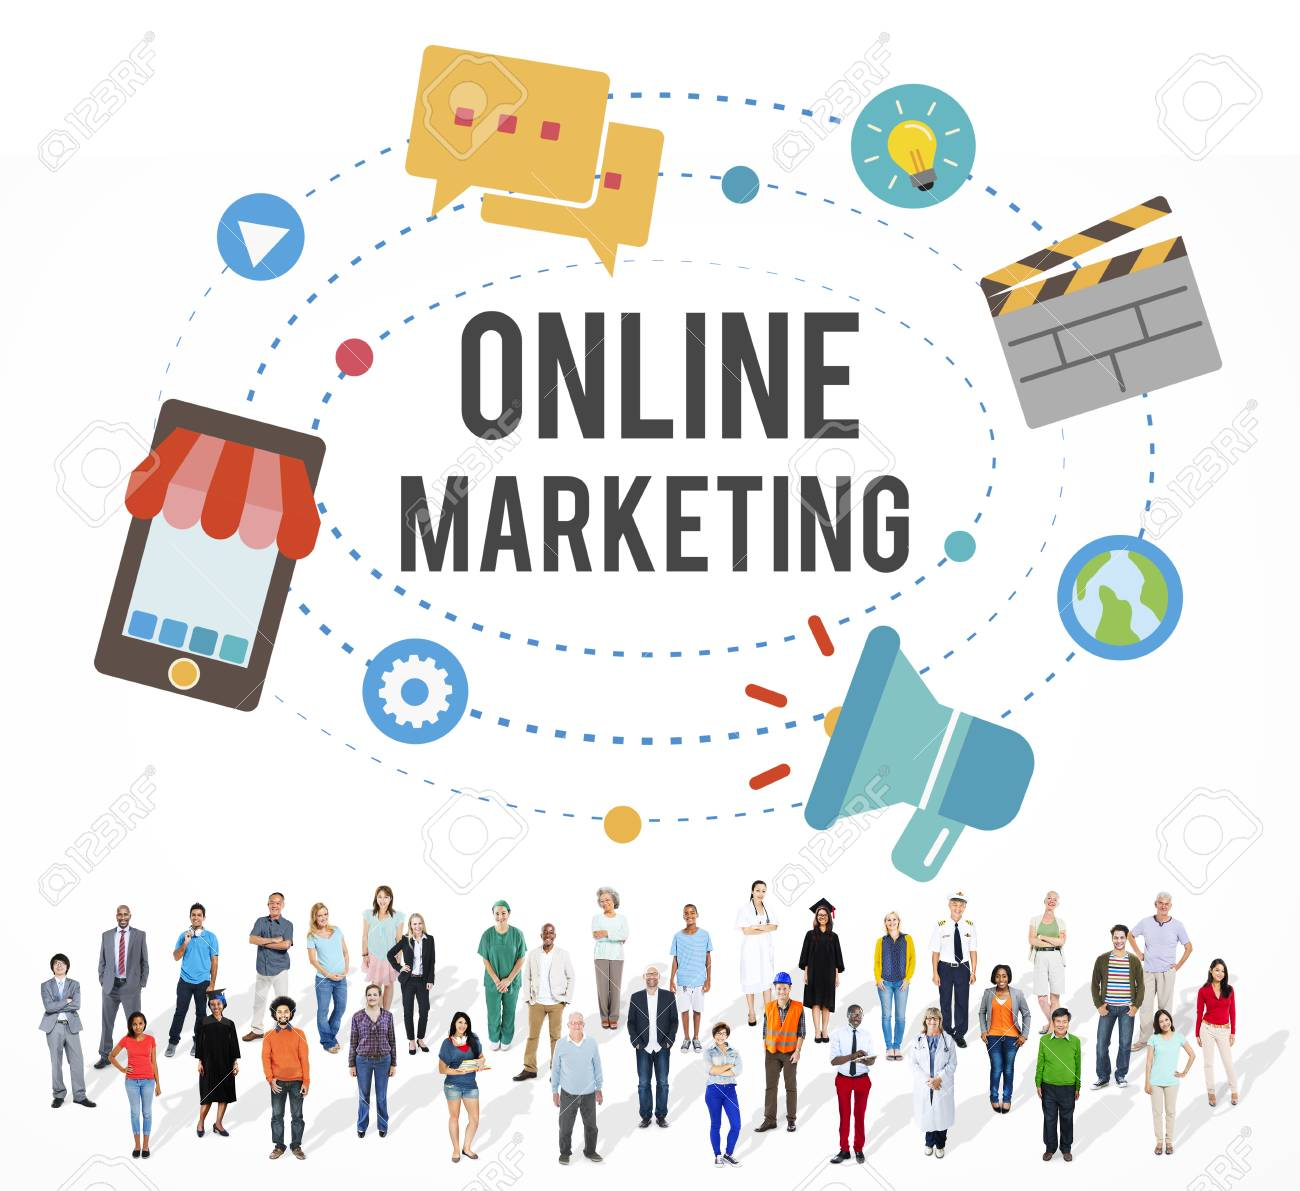 Online Marketing Valencia